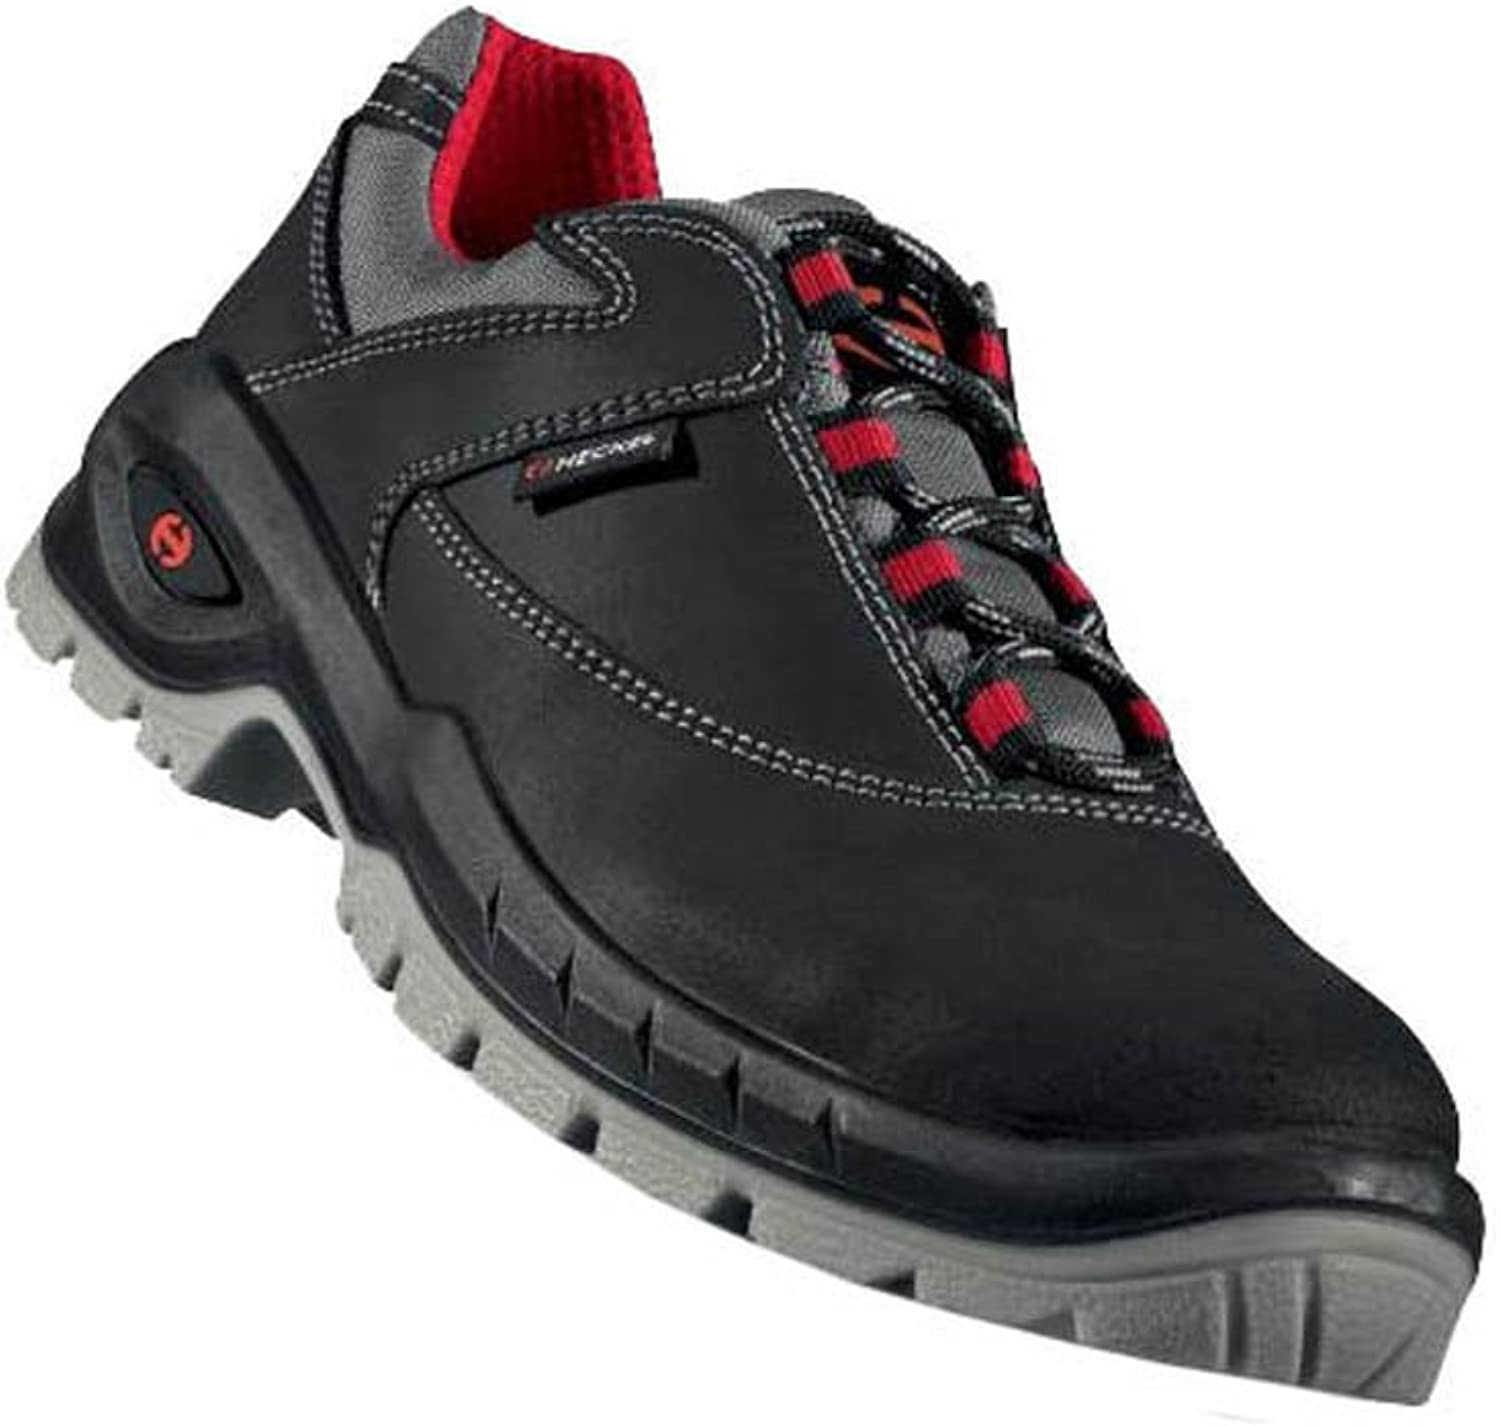 Heckel MACsole Sport SUXXEED S3 - Work shoes Safety Footwear - 100% Metal Free